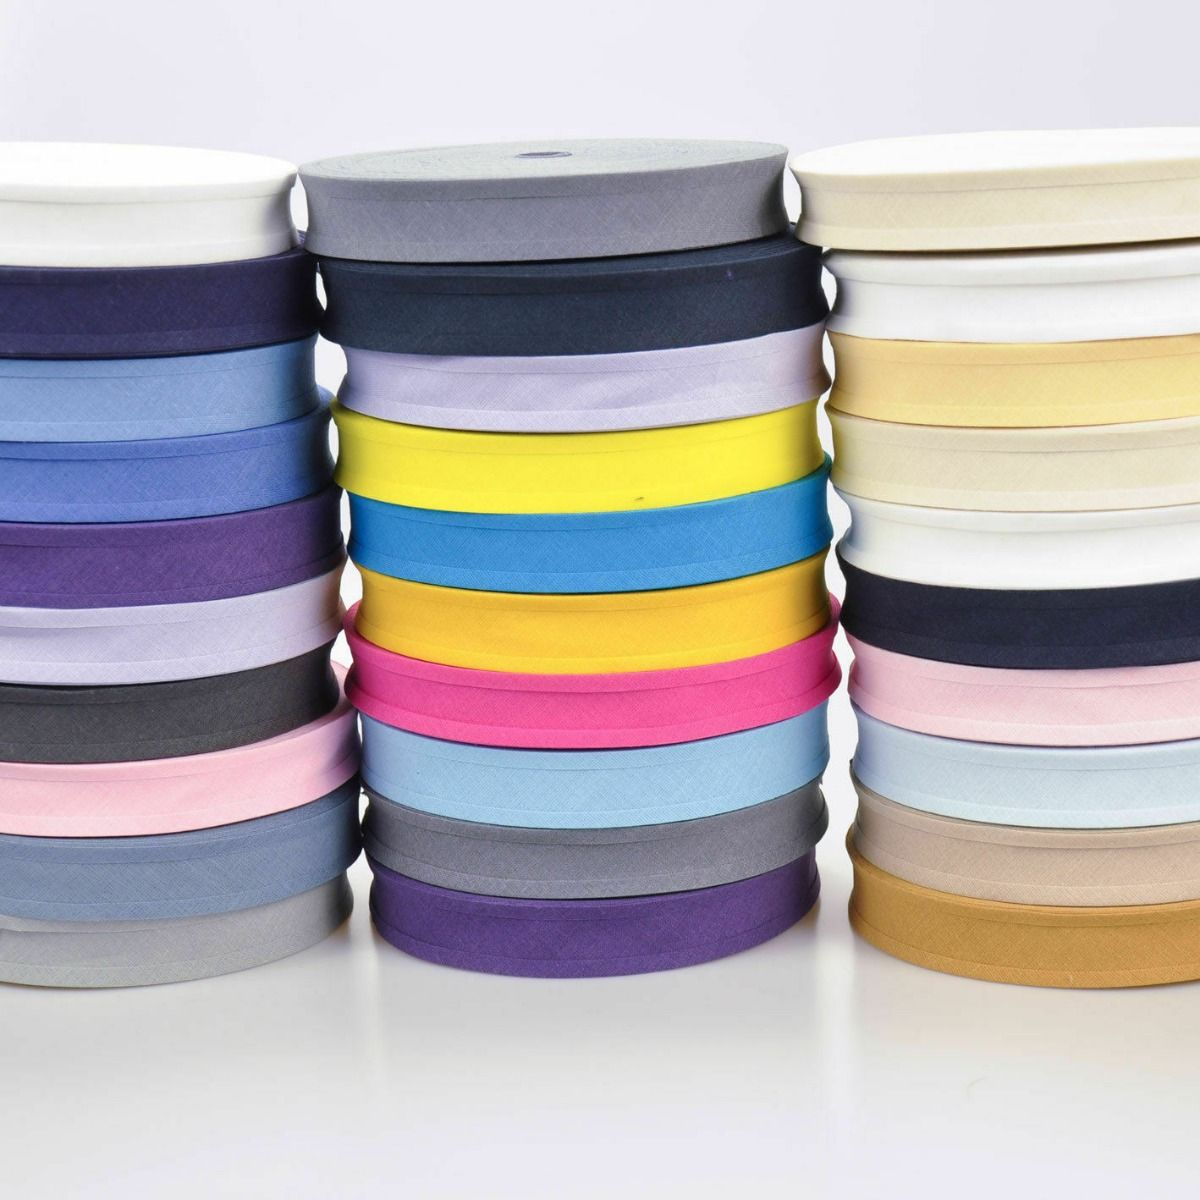 Remnant - 500m of 16mm\25mm Cotton Bias - Variety of colours - Lucky Dip- 500m in total - Discontinued Line